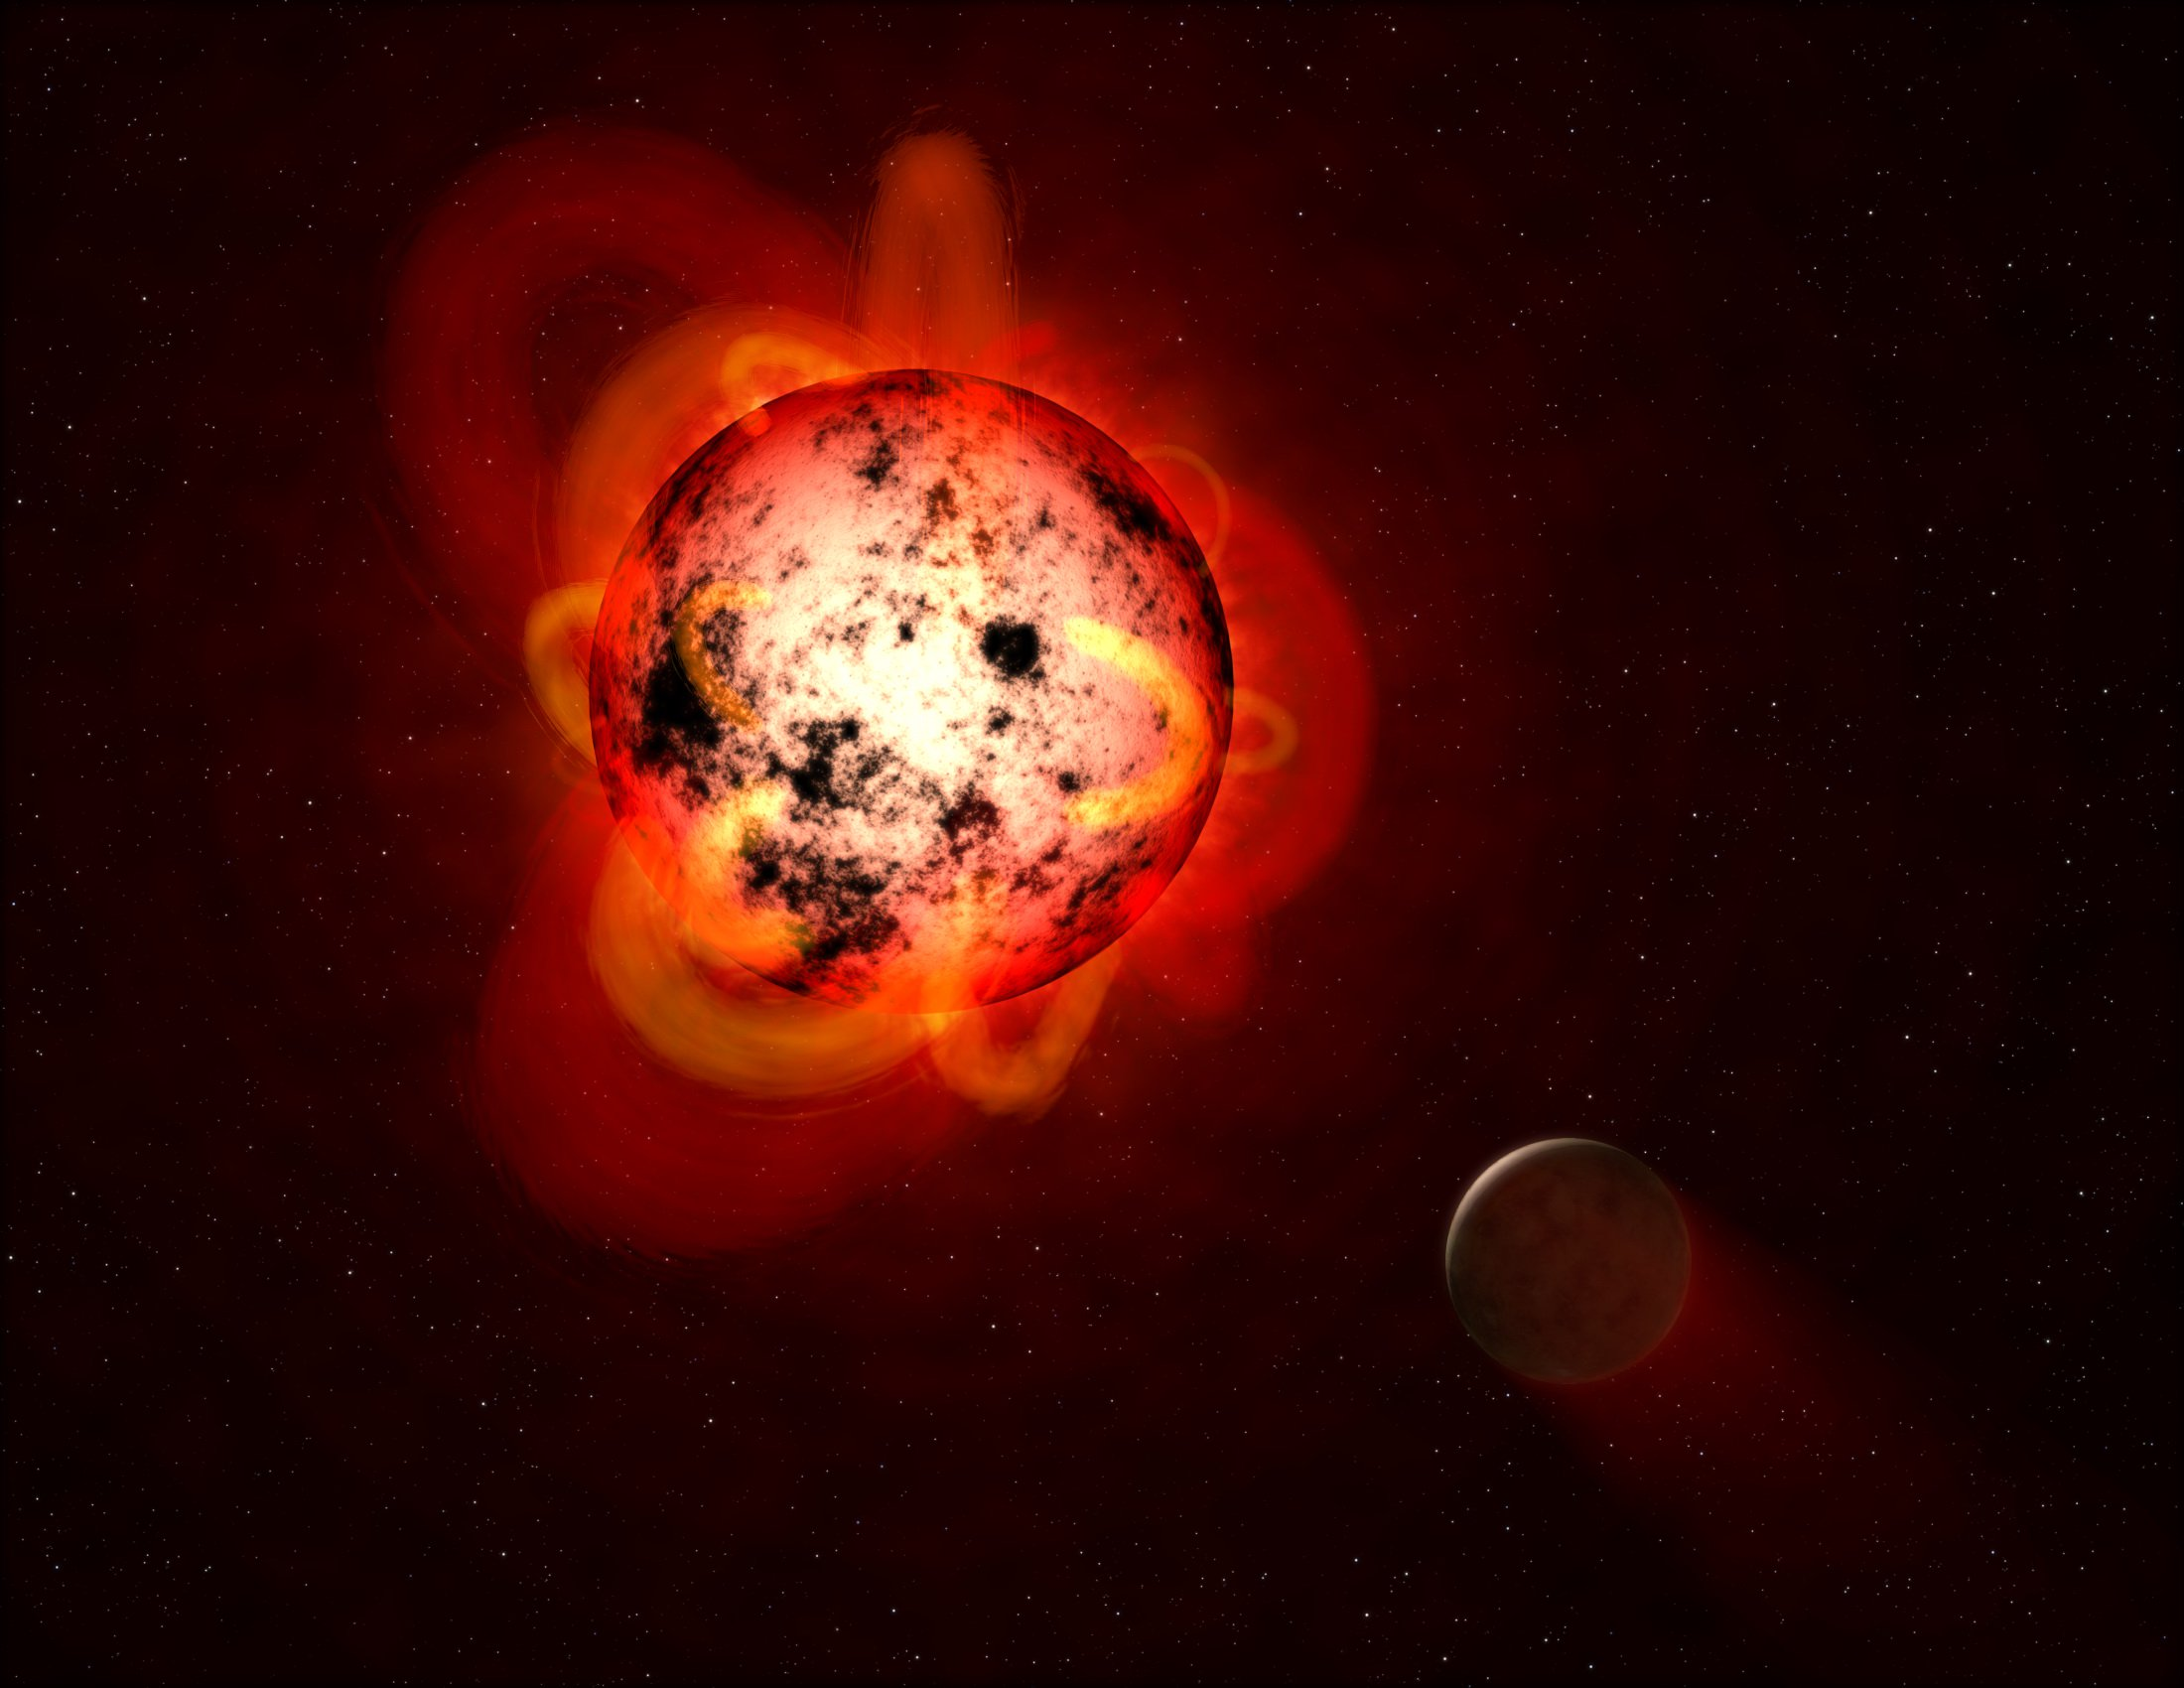 Another star system was sterilized from any possible life